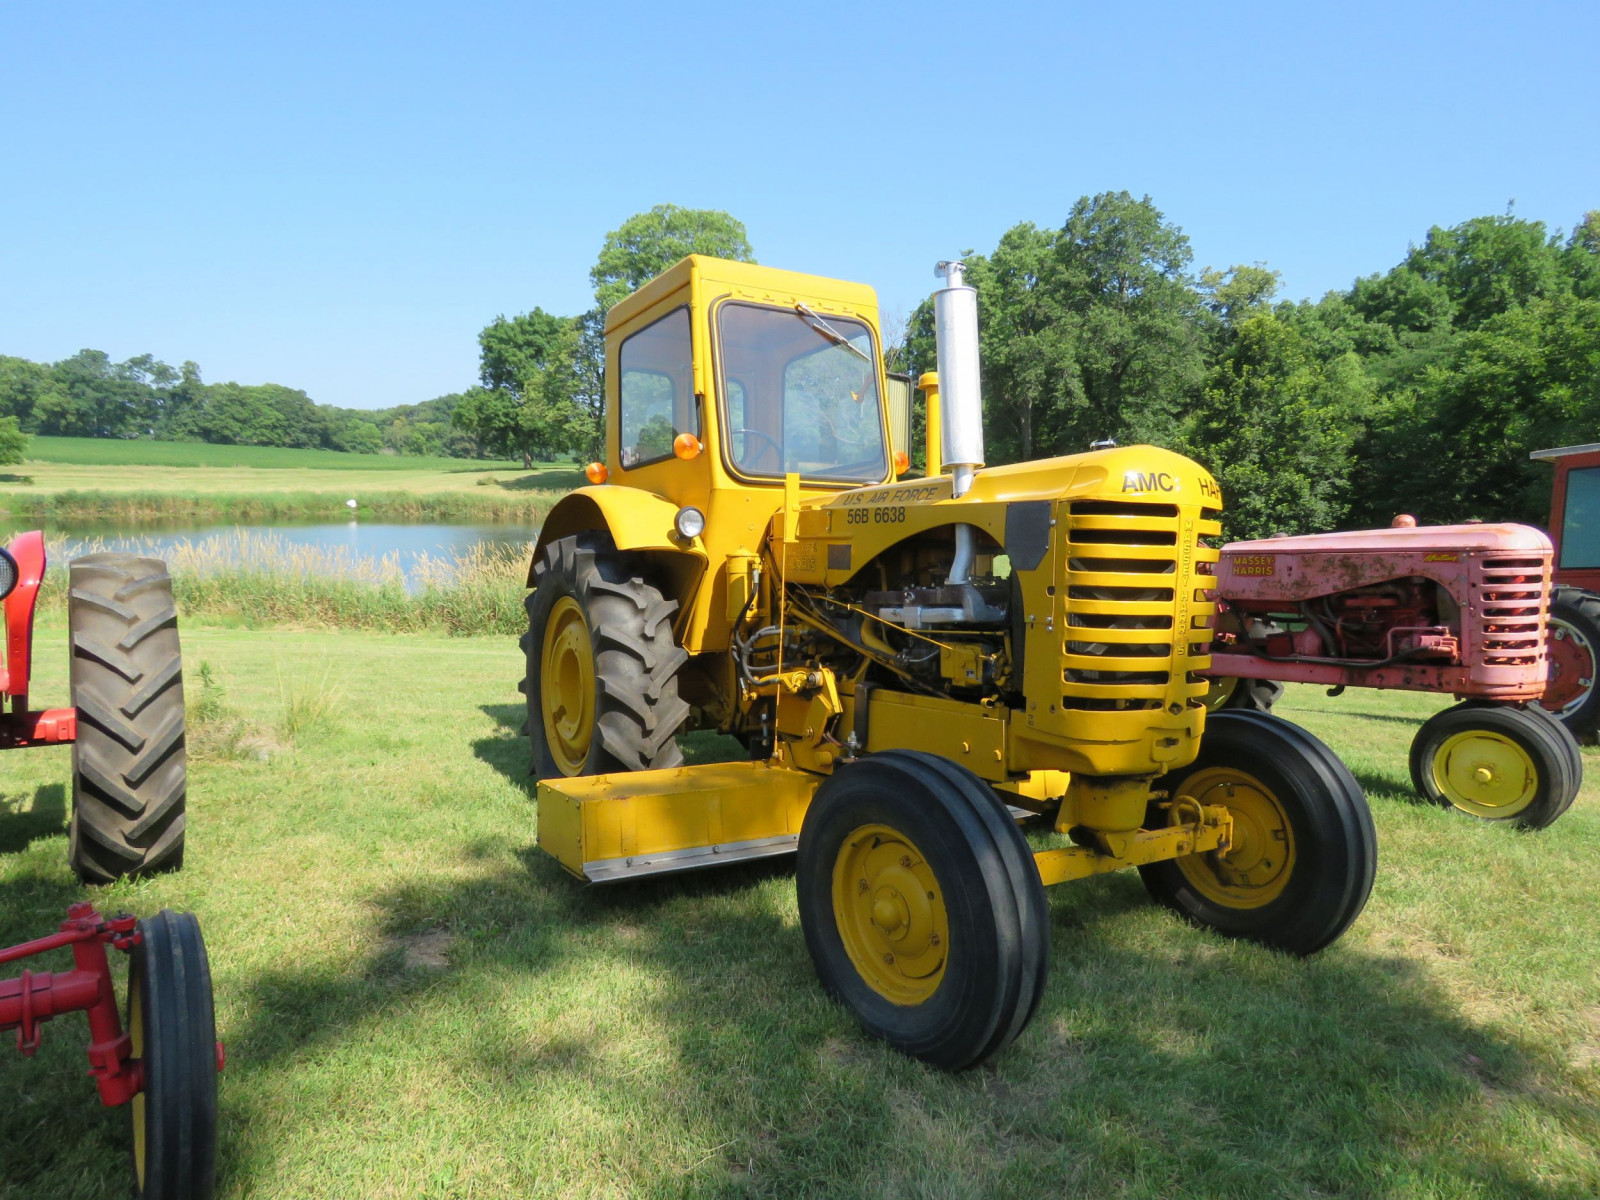 1956 Massey Harris 333 Tractor with Sabre Magnetic Sweeper - Image 1